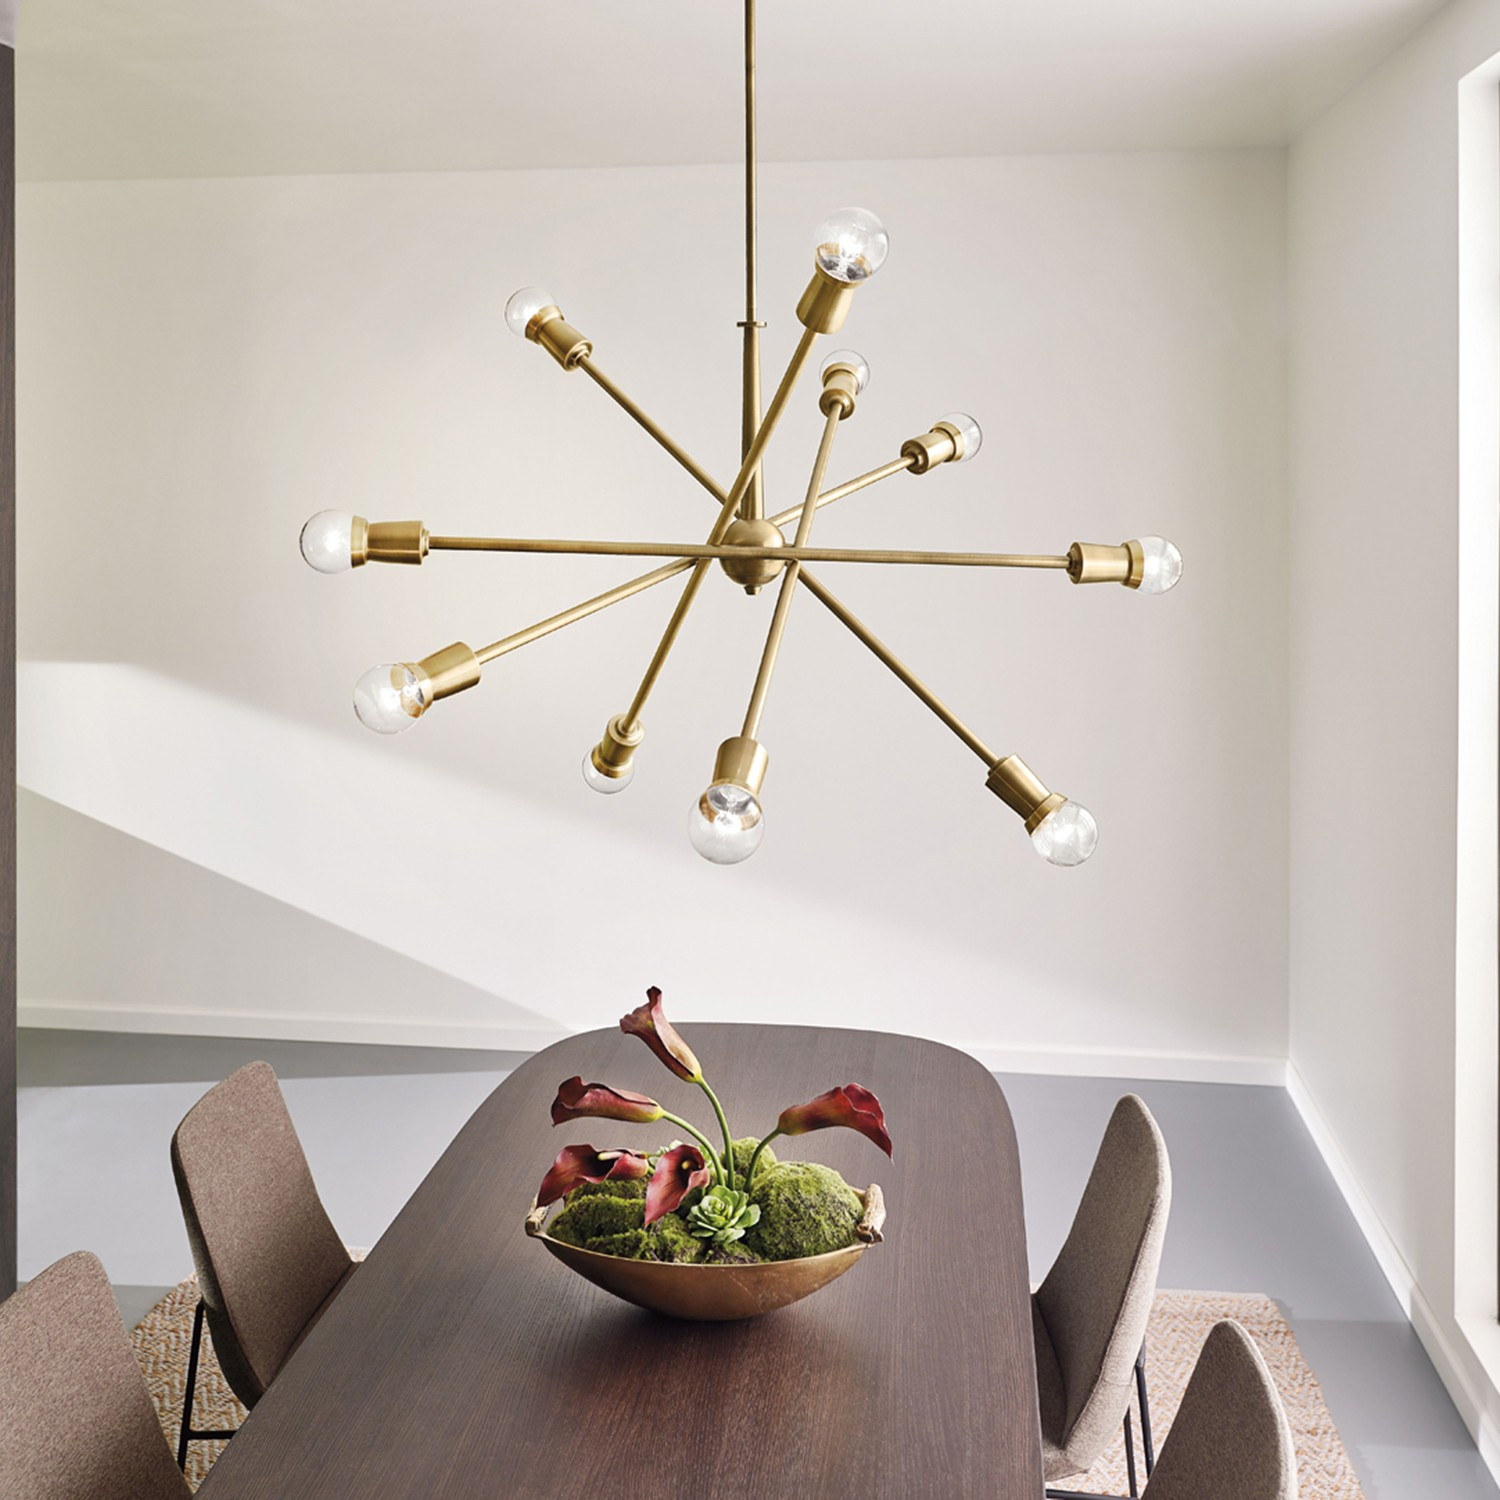 Introducing Kichler Modern Lighting